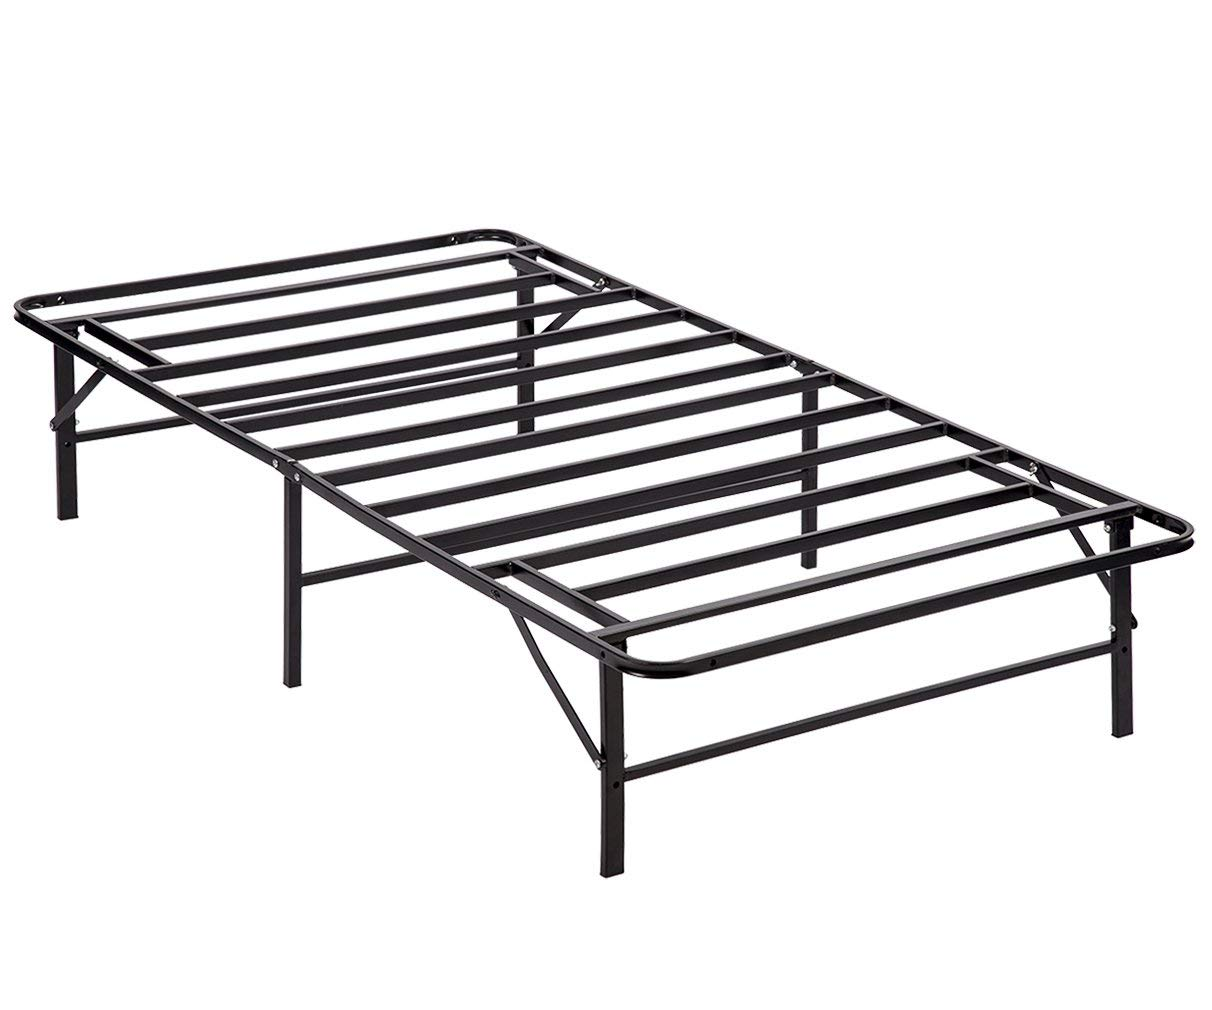 PayLessHere Bed Frame Platform Folding Bed Frame Twin Metal Base Mattress Foundation Frame 14 Inch Portable Heavy-Duty Replaces Box Spring with Storage Black Steel